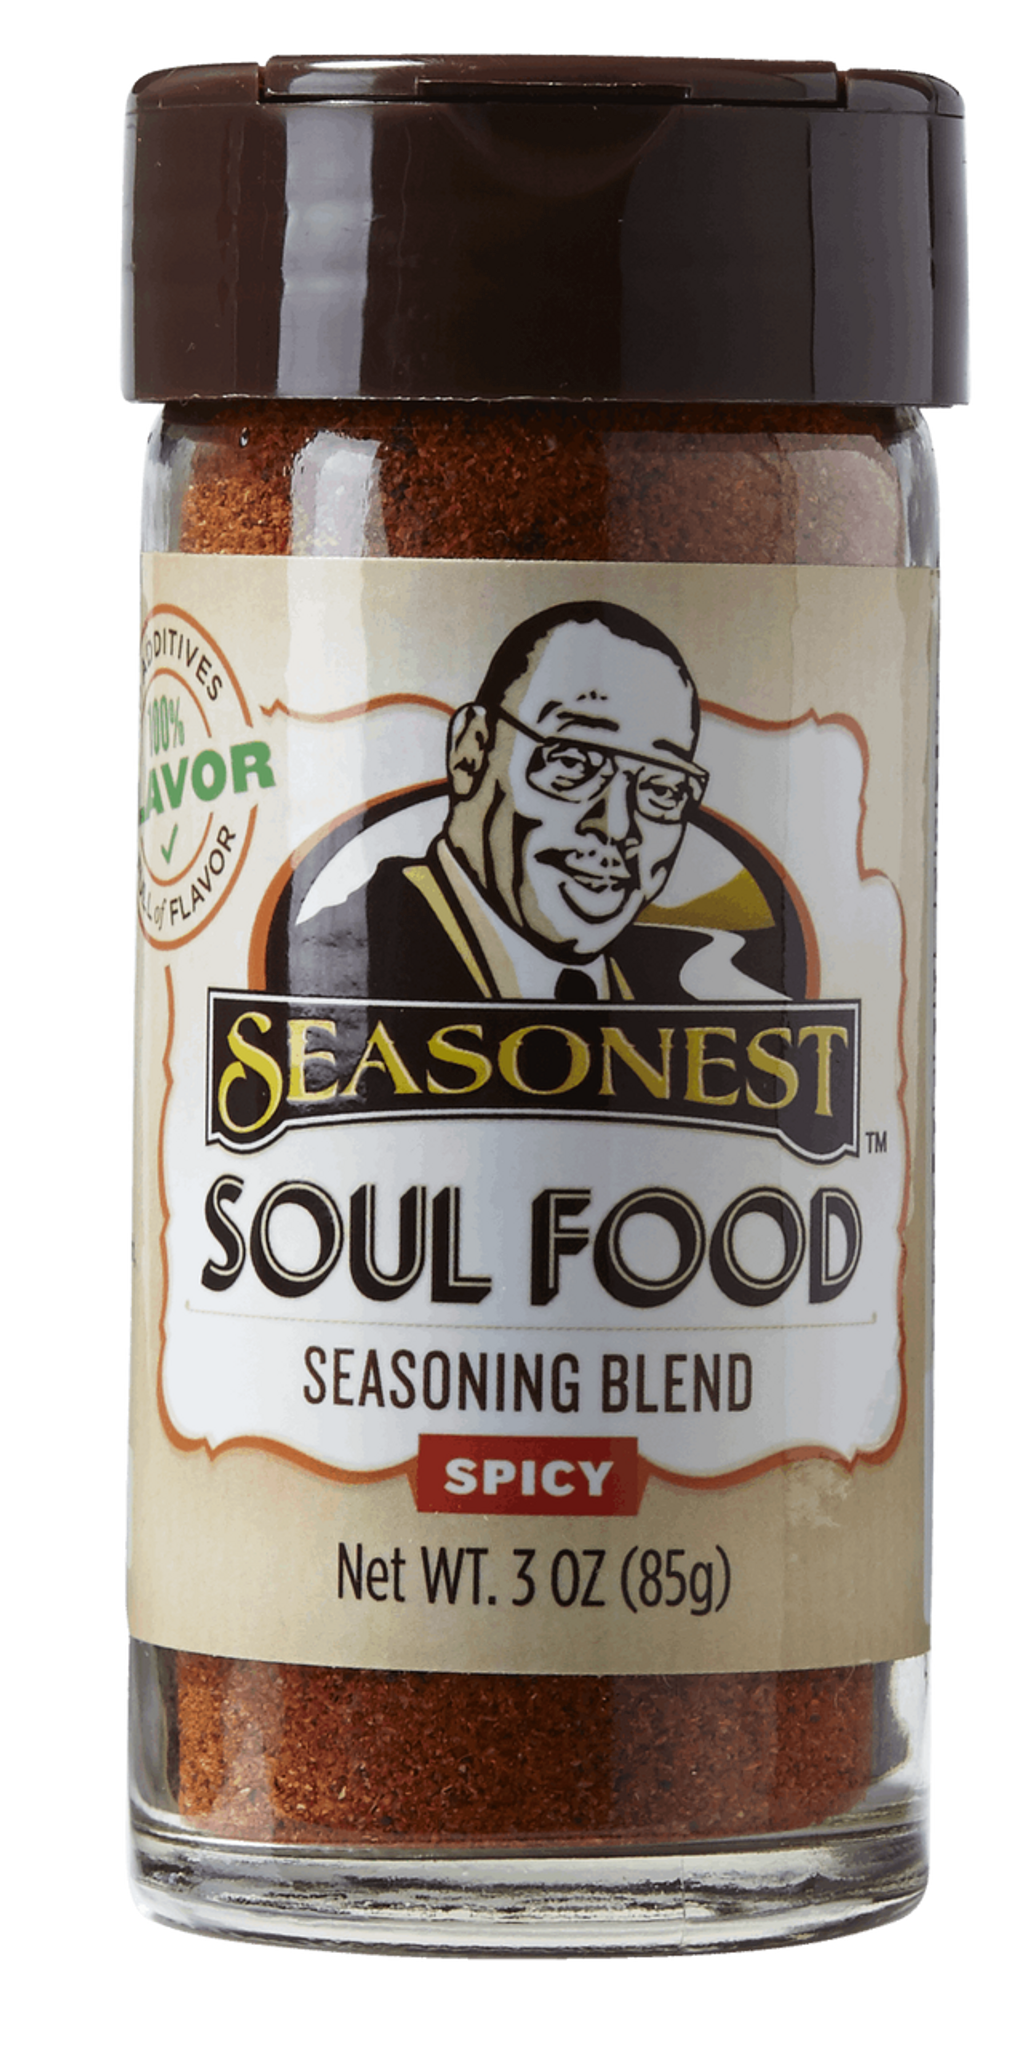 Seasonest Soul Food Spicy Seasoning Blend